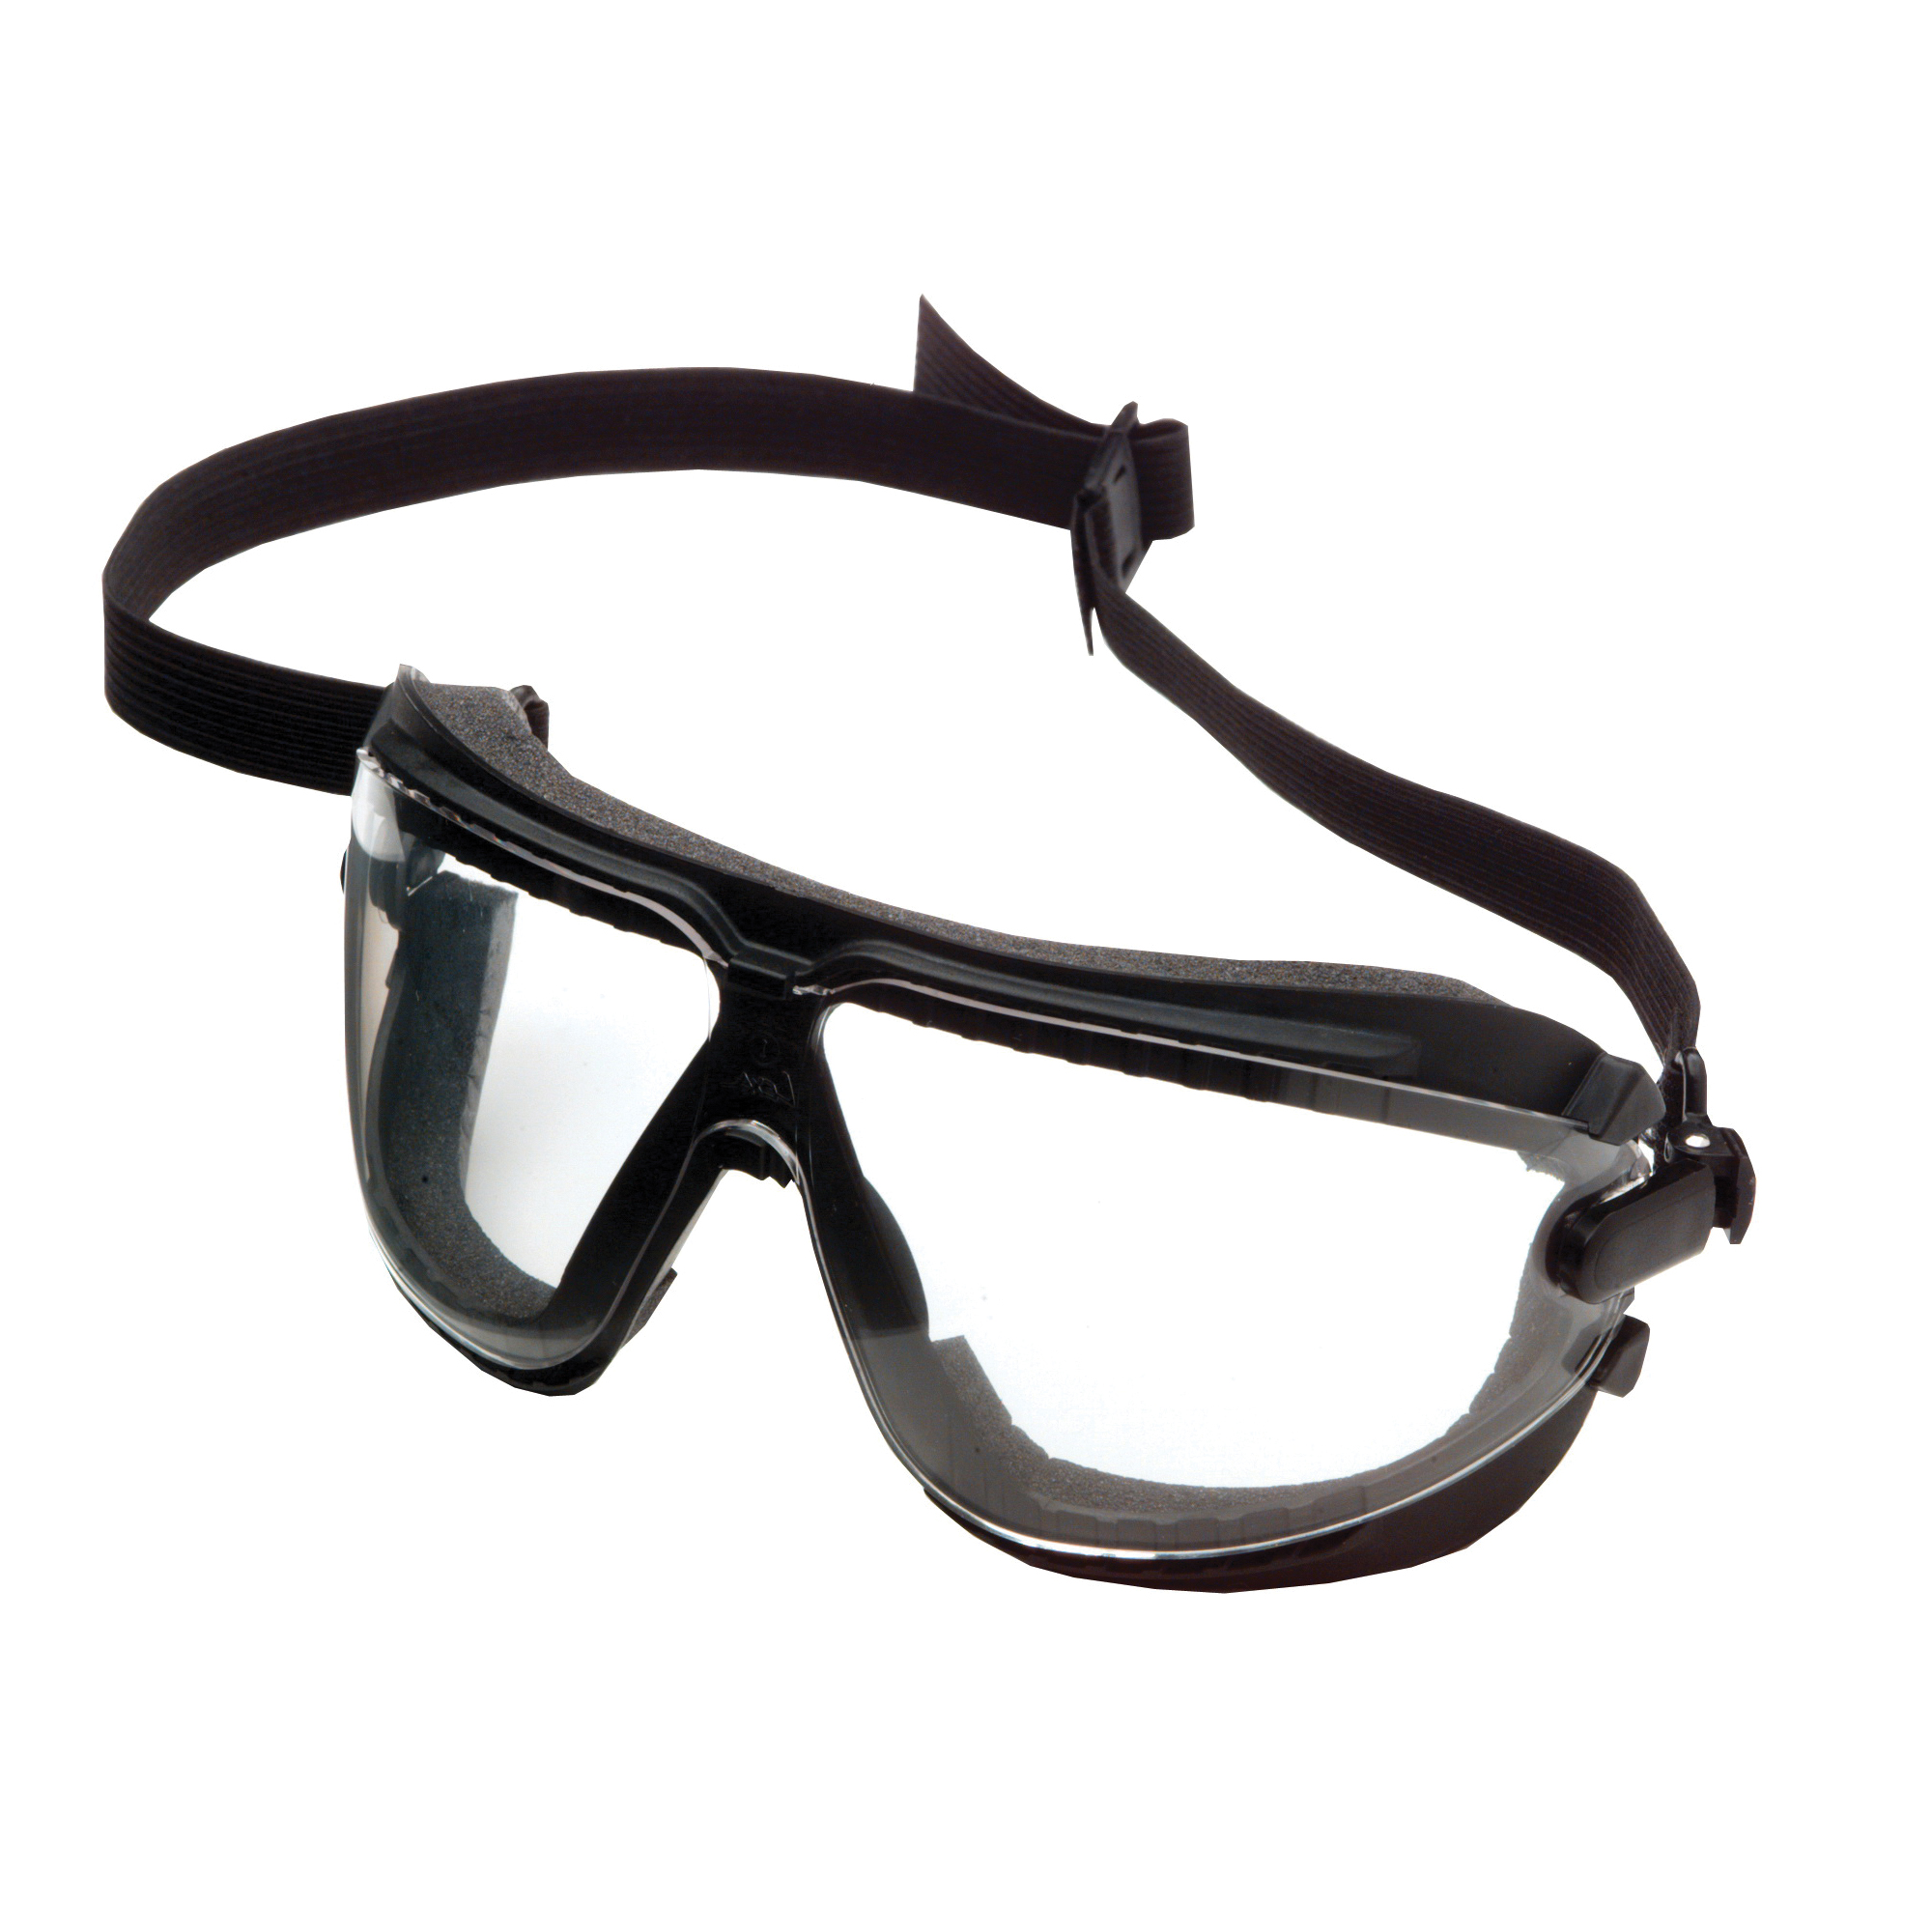 3M™ GoggleGear™ 078371-62330 16617-00000-10 Direct Vent Lightweight Value Safety Goggles, Anti-Fog/Impact Resistant/UV-Protective Clear Polycarbonate Lens, 99.9% % UV Protection, Elastic Strap, Specifications Met: ANSI Z87.1-2003, CSA Z94.3-2007